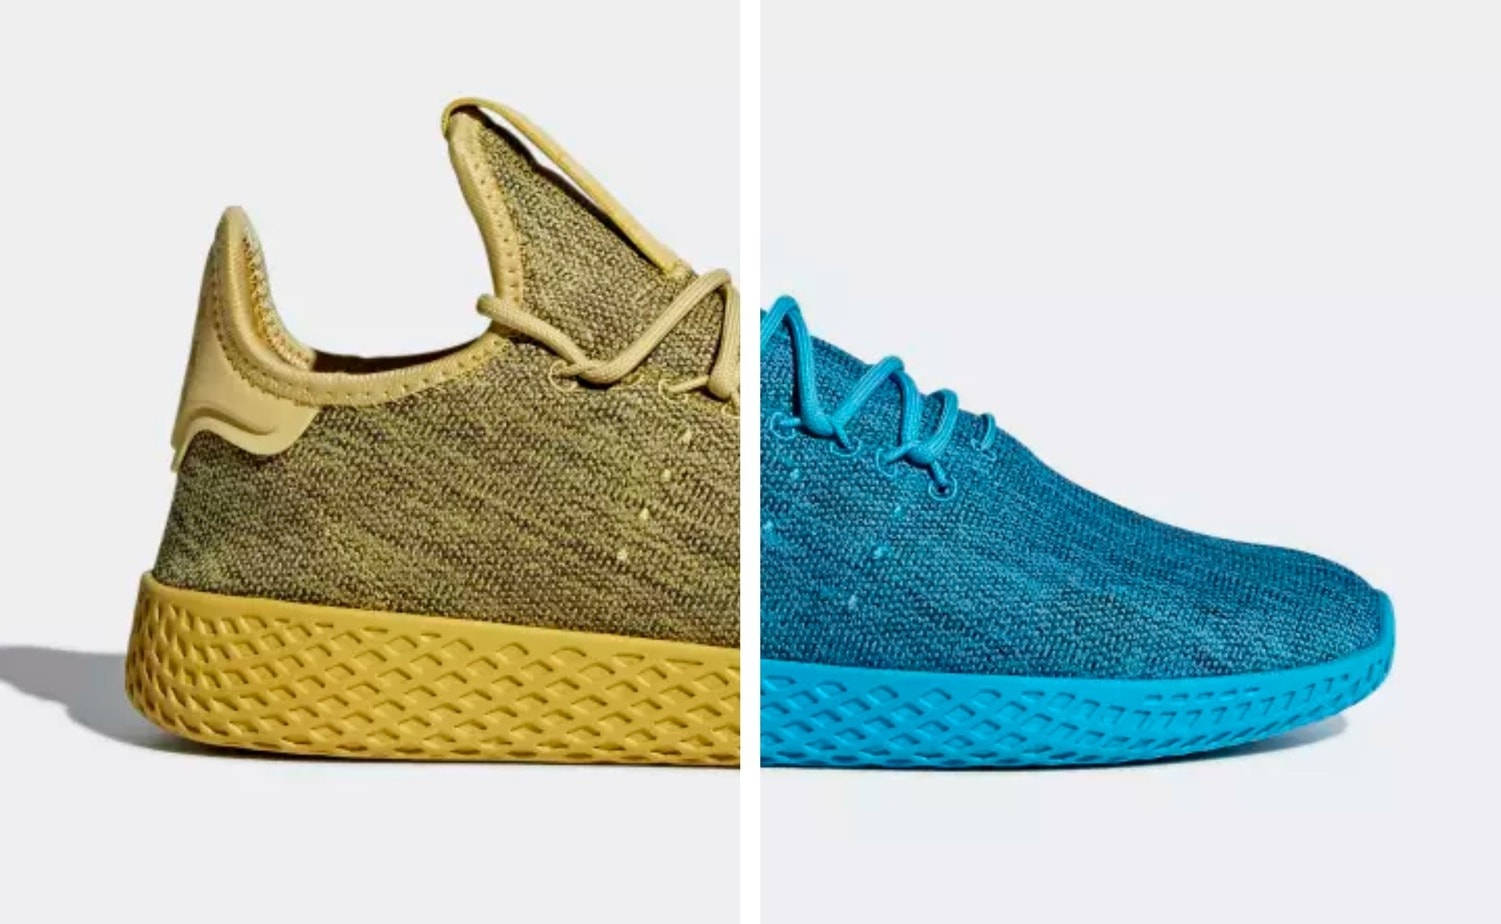 cfc0a6cd79ea3 Pharrell and adidas Release a Two-Part Tonal Tennis Hu Pack Featuring  Bright New Colors